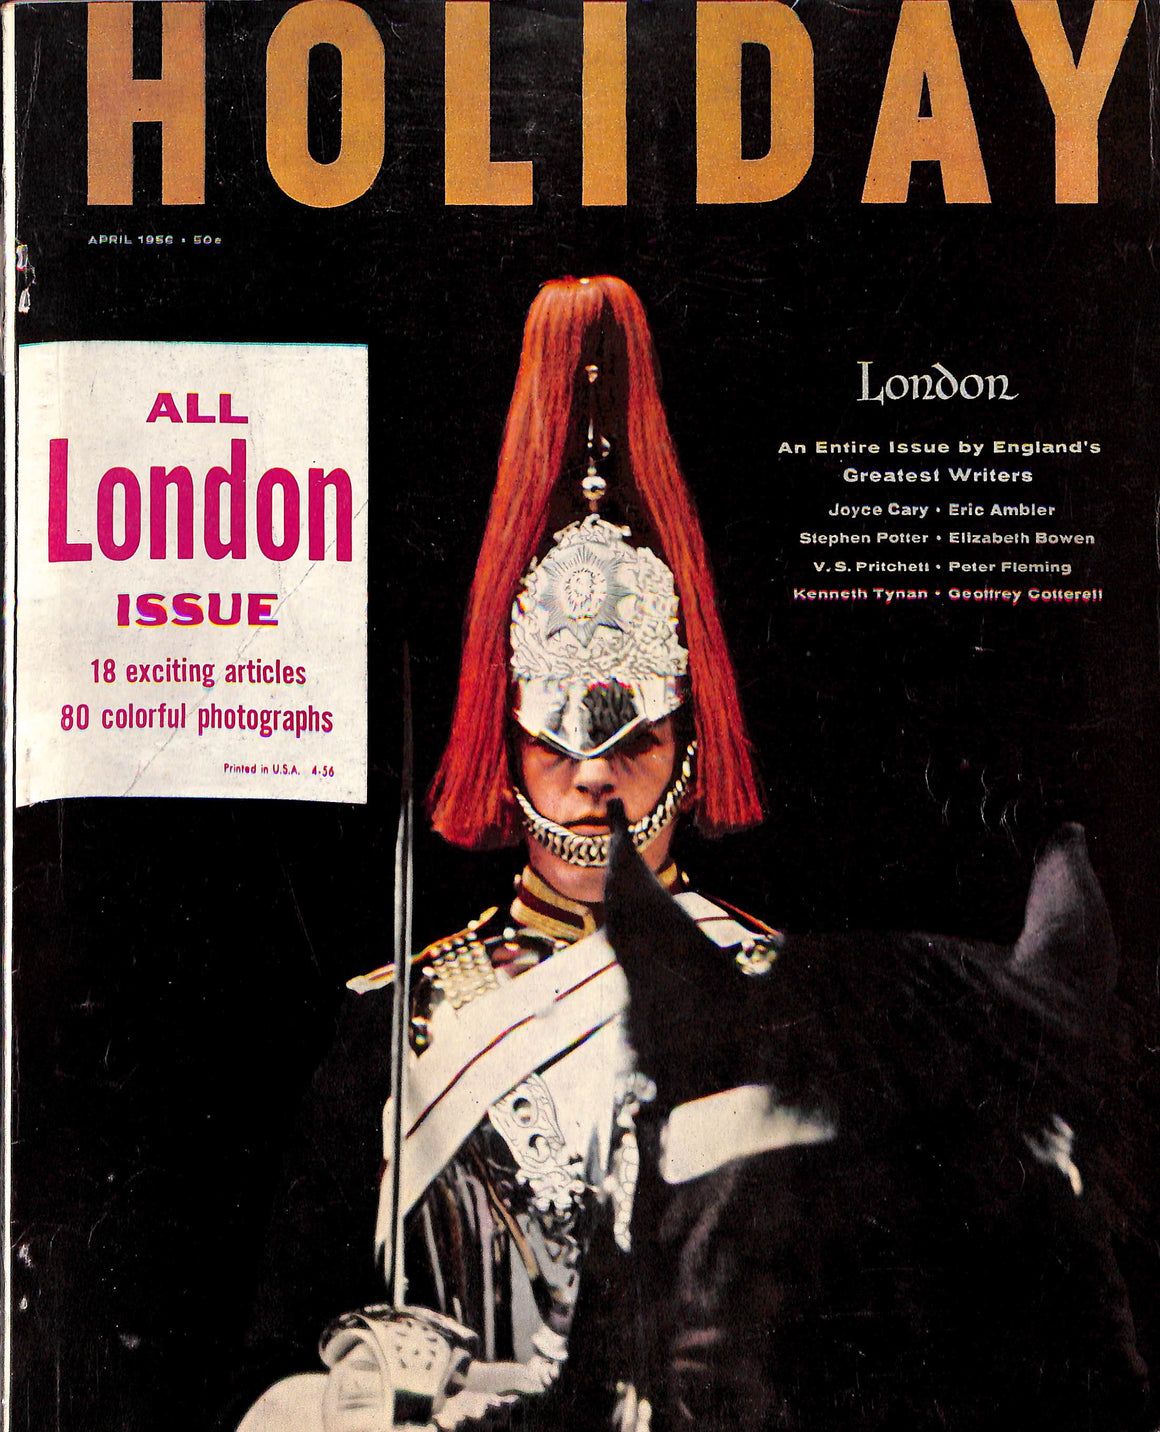 Holiday: April 1956